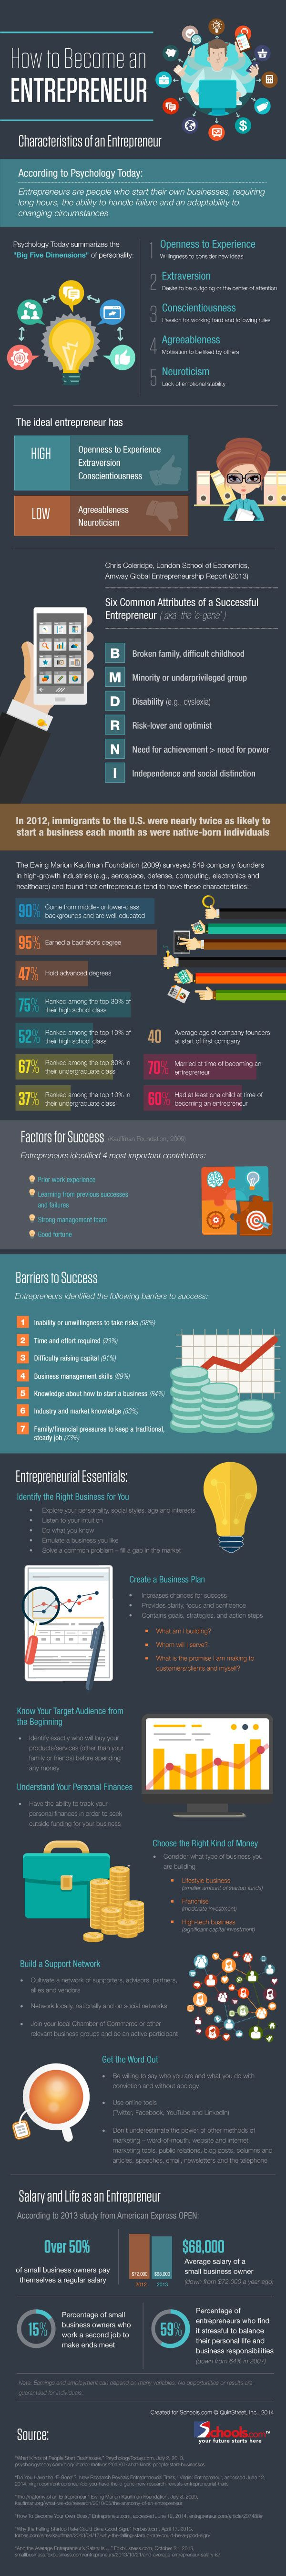 Thinking of Starting a Business Here's How to Become an Entrepreneur #Infographic